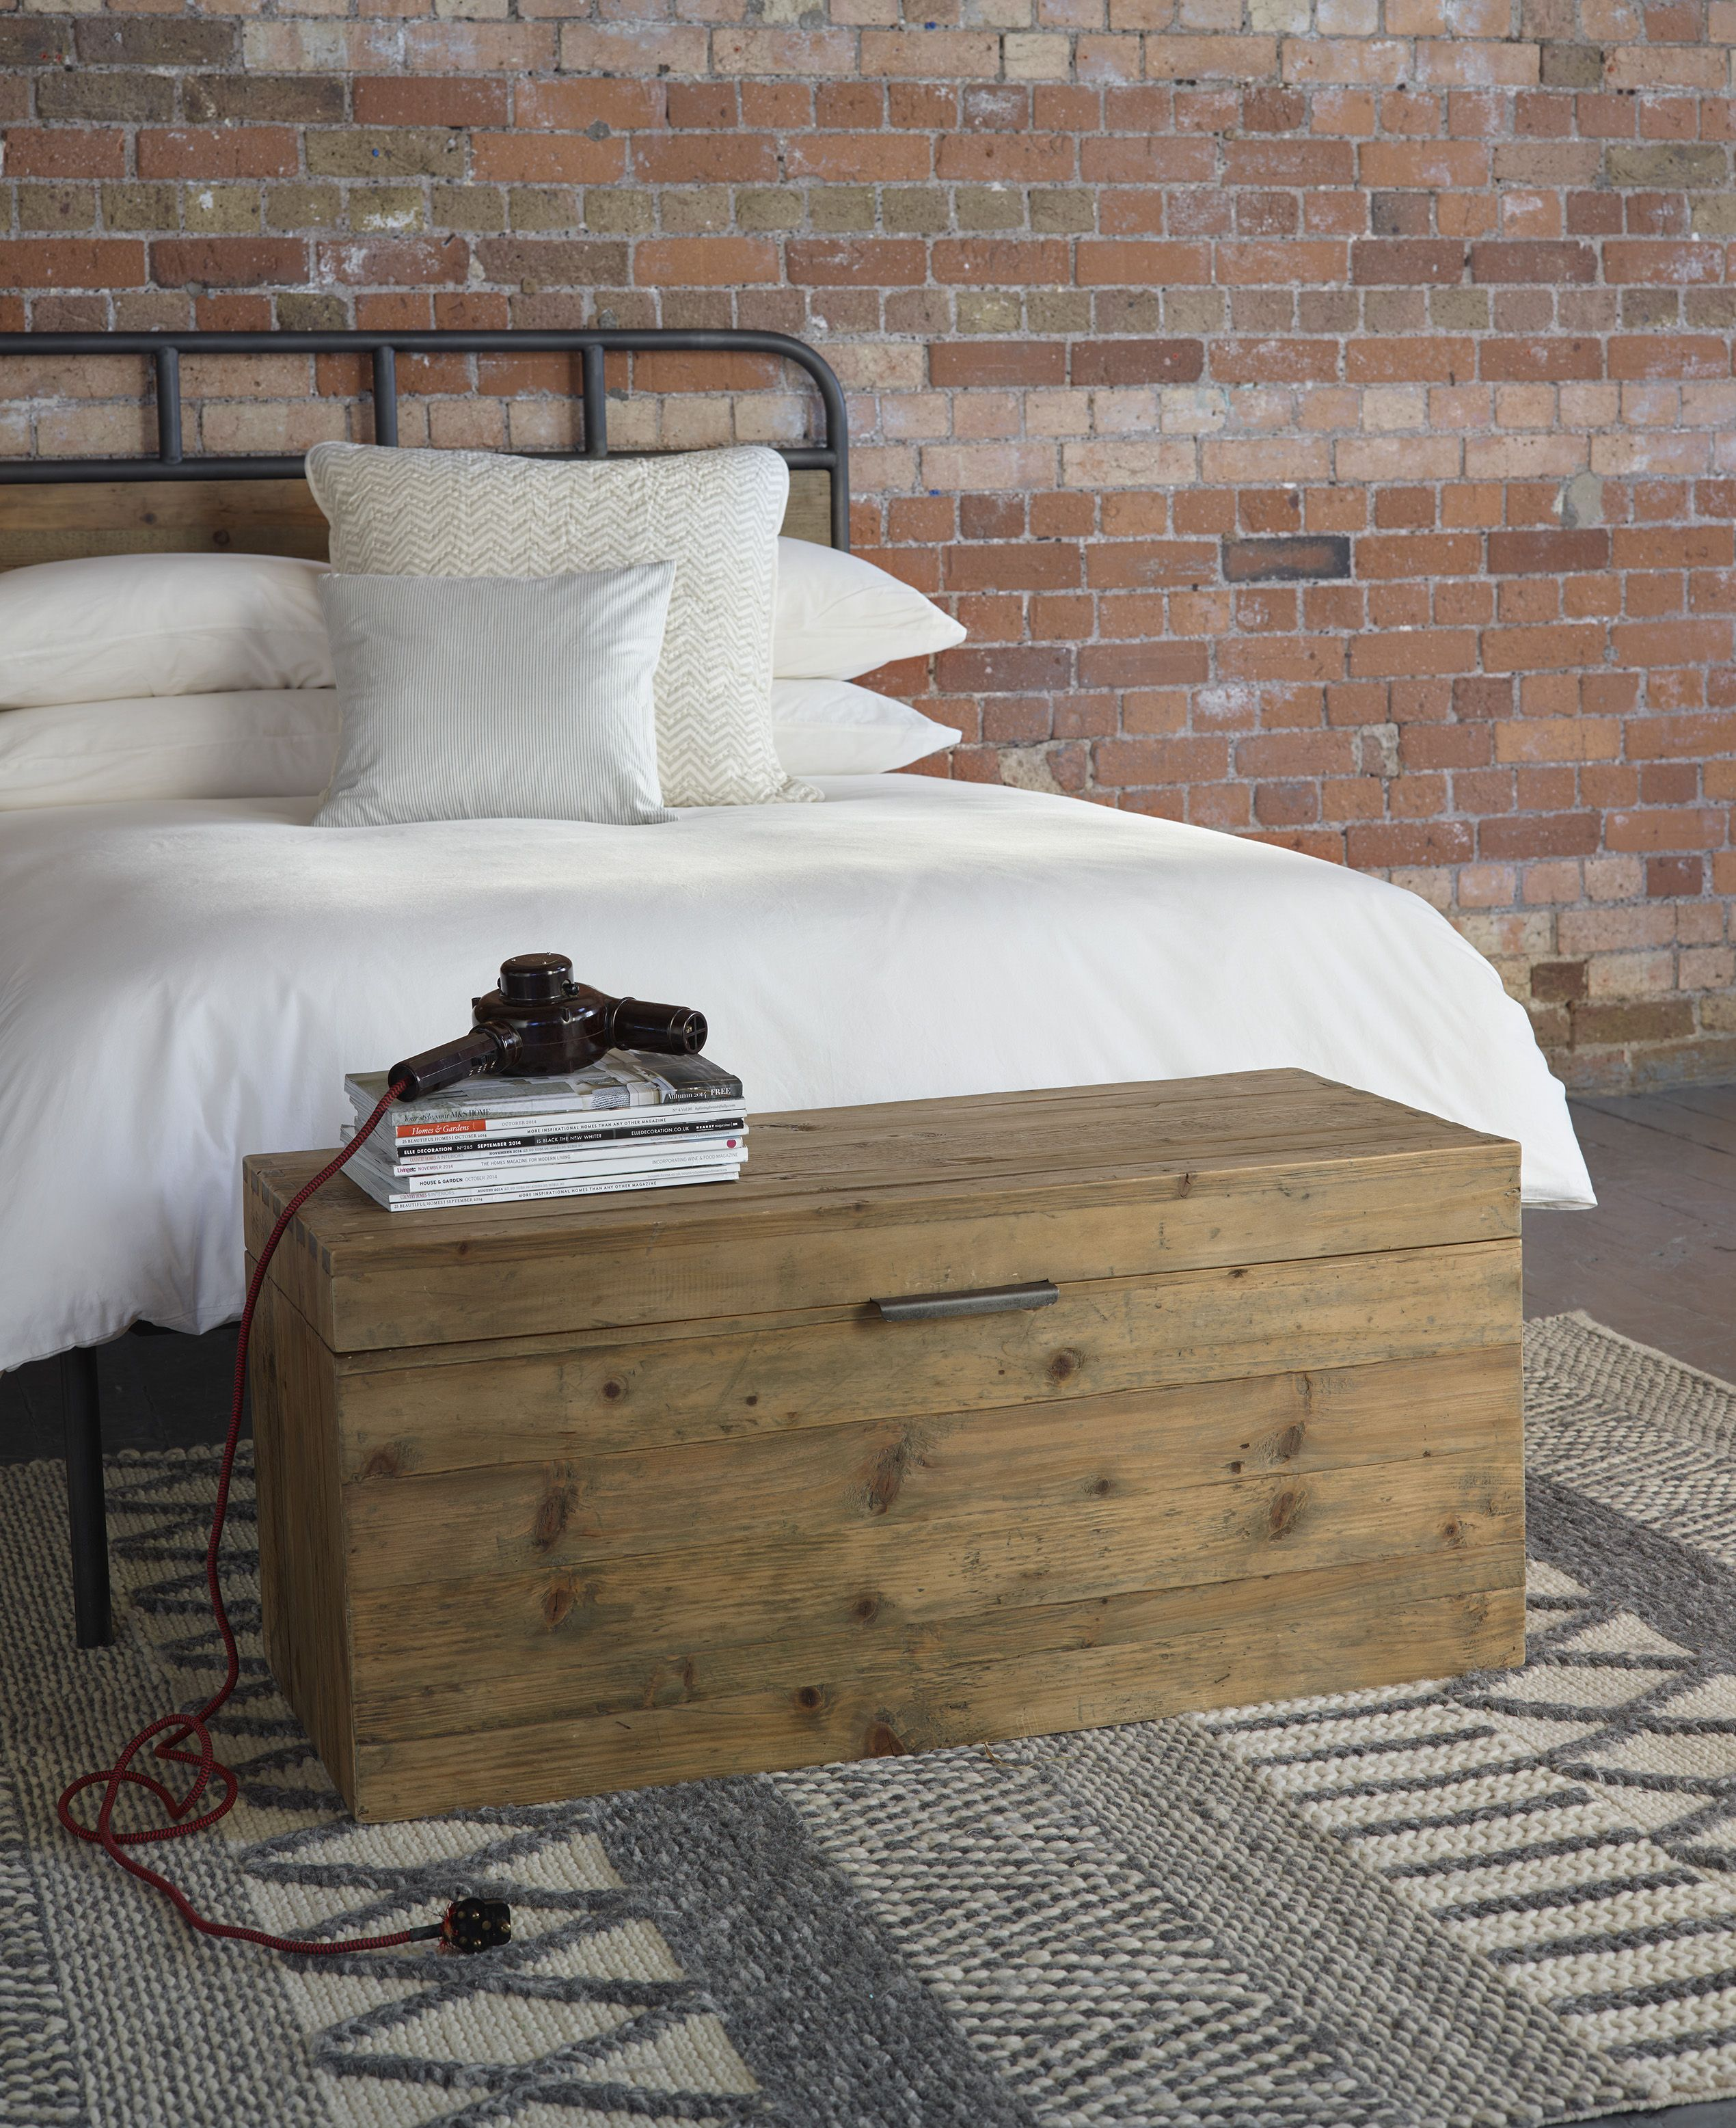 industrial style bedroom furniture. baxter round blanket chest warehouse industrial style bedroom furniture from lombok